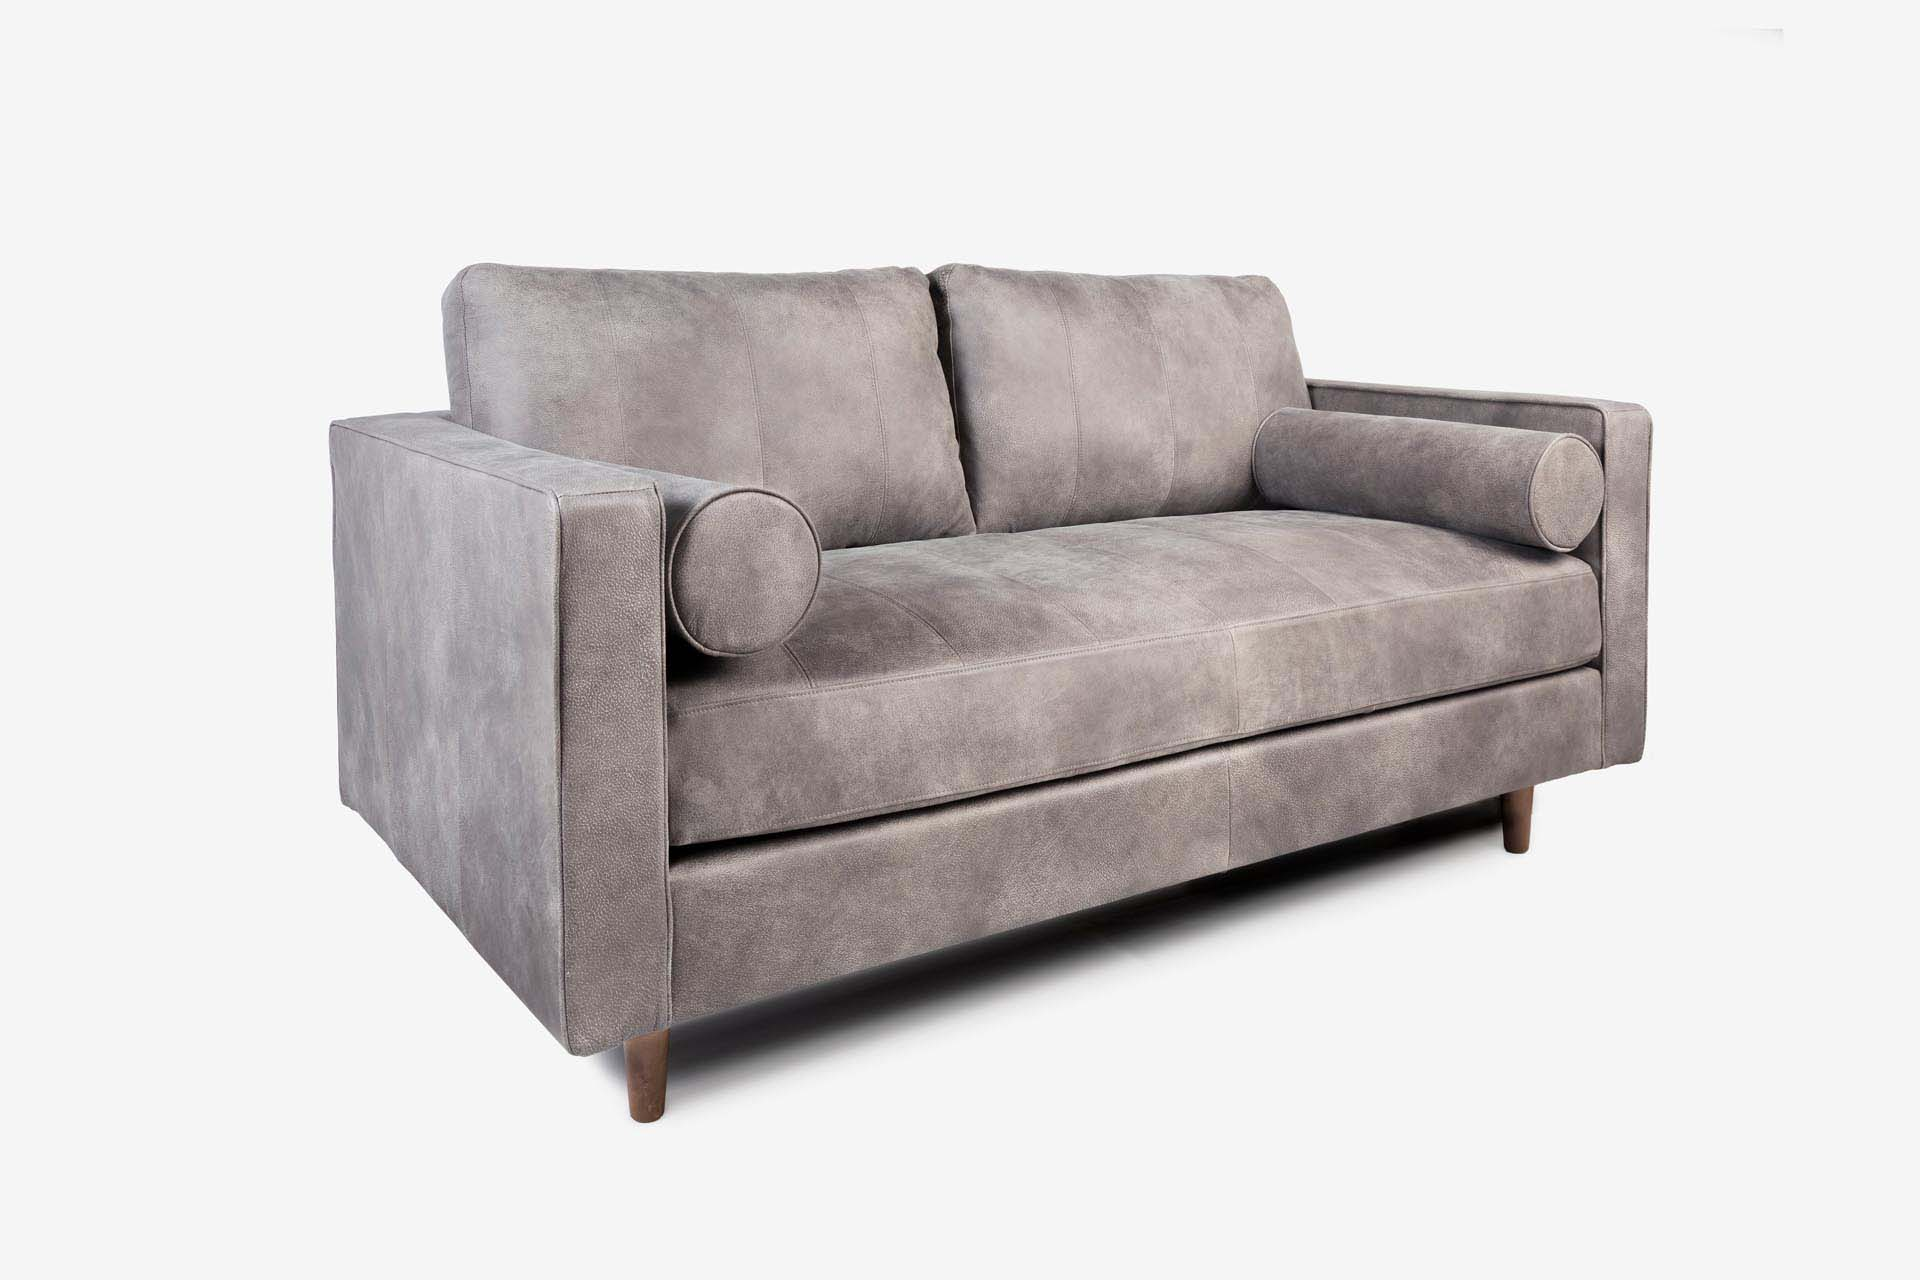 Cognac Leather Loveseat Sofa Grey Leather With Walnut Legs Nordby